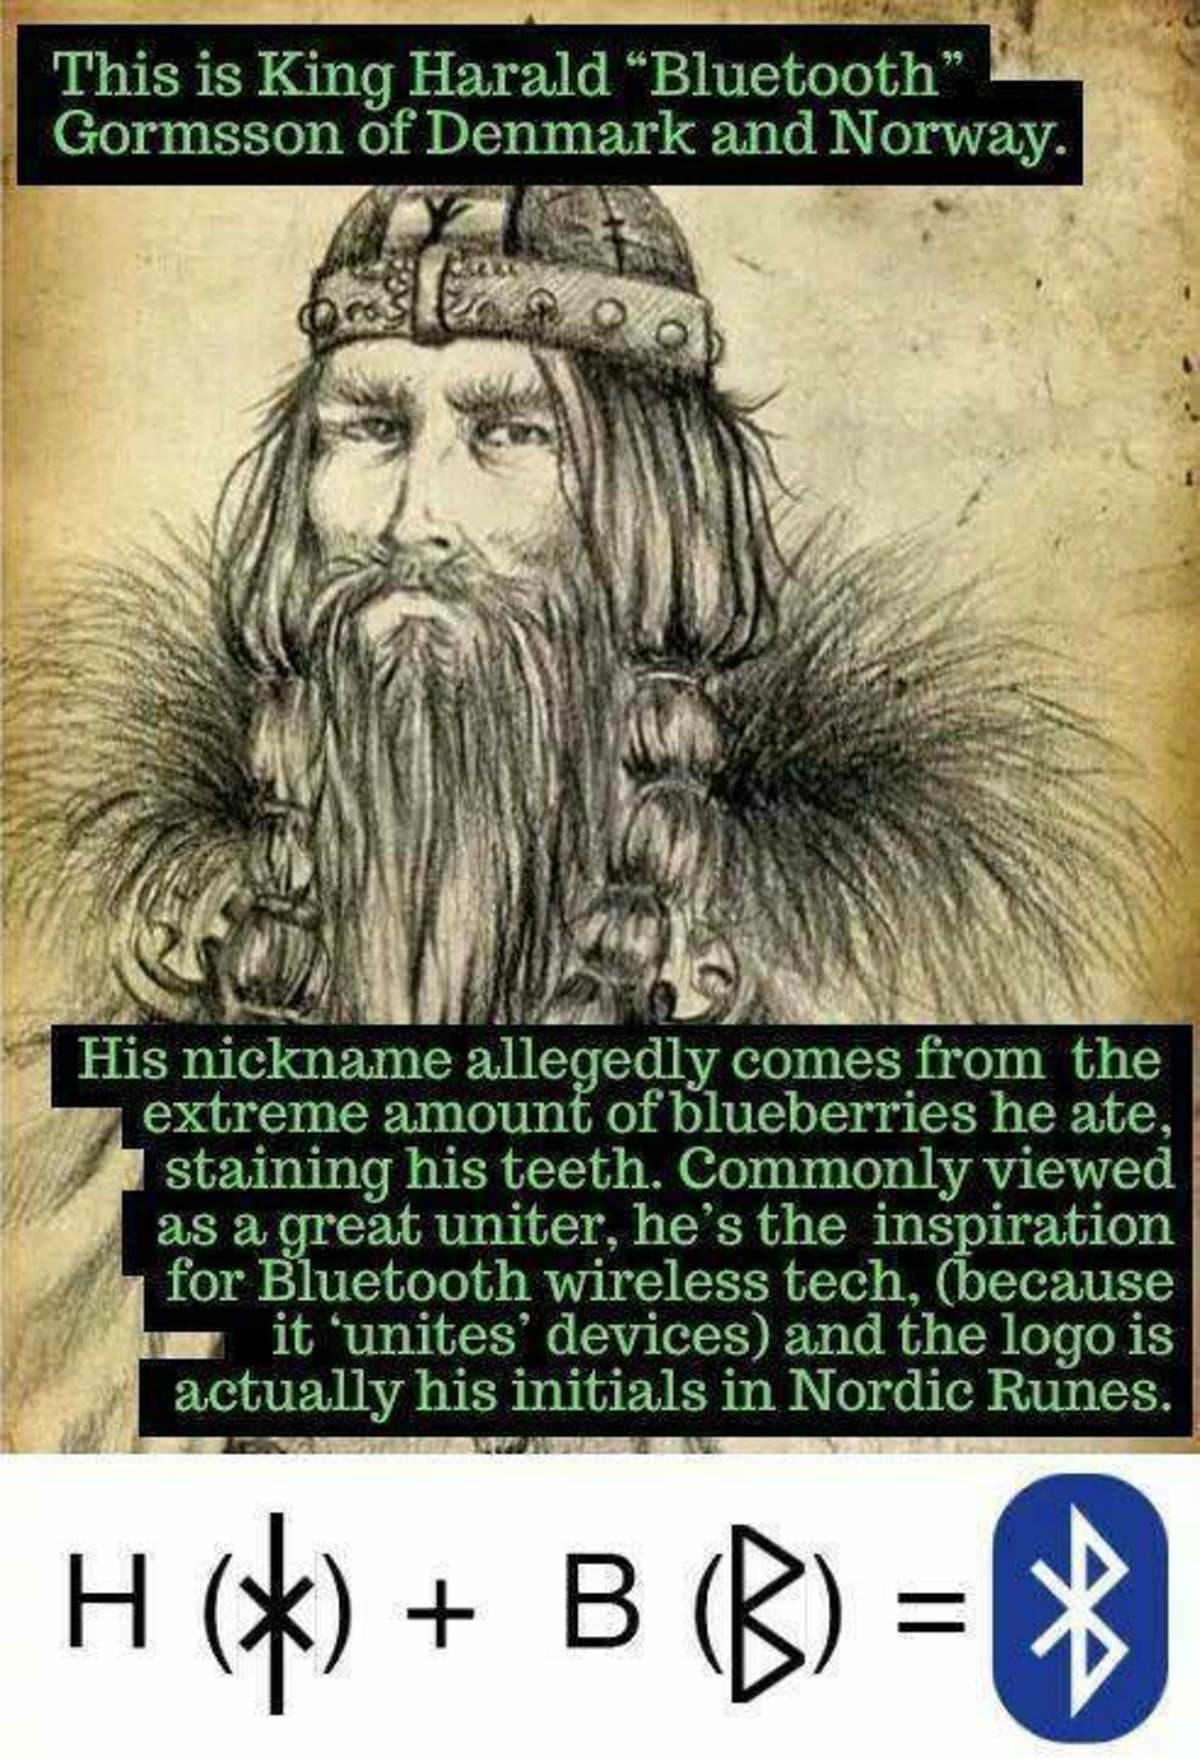 certain evasive Herring. .. Absolute no on the explanation of the blue part of Harald Blåtand. Transliterated from the old Danish written in medieval runes, his name was Haraldr Blá Thandr